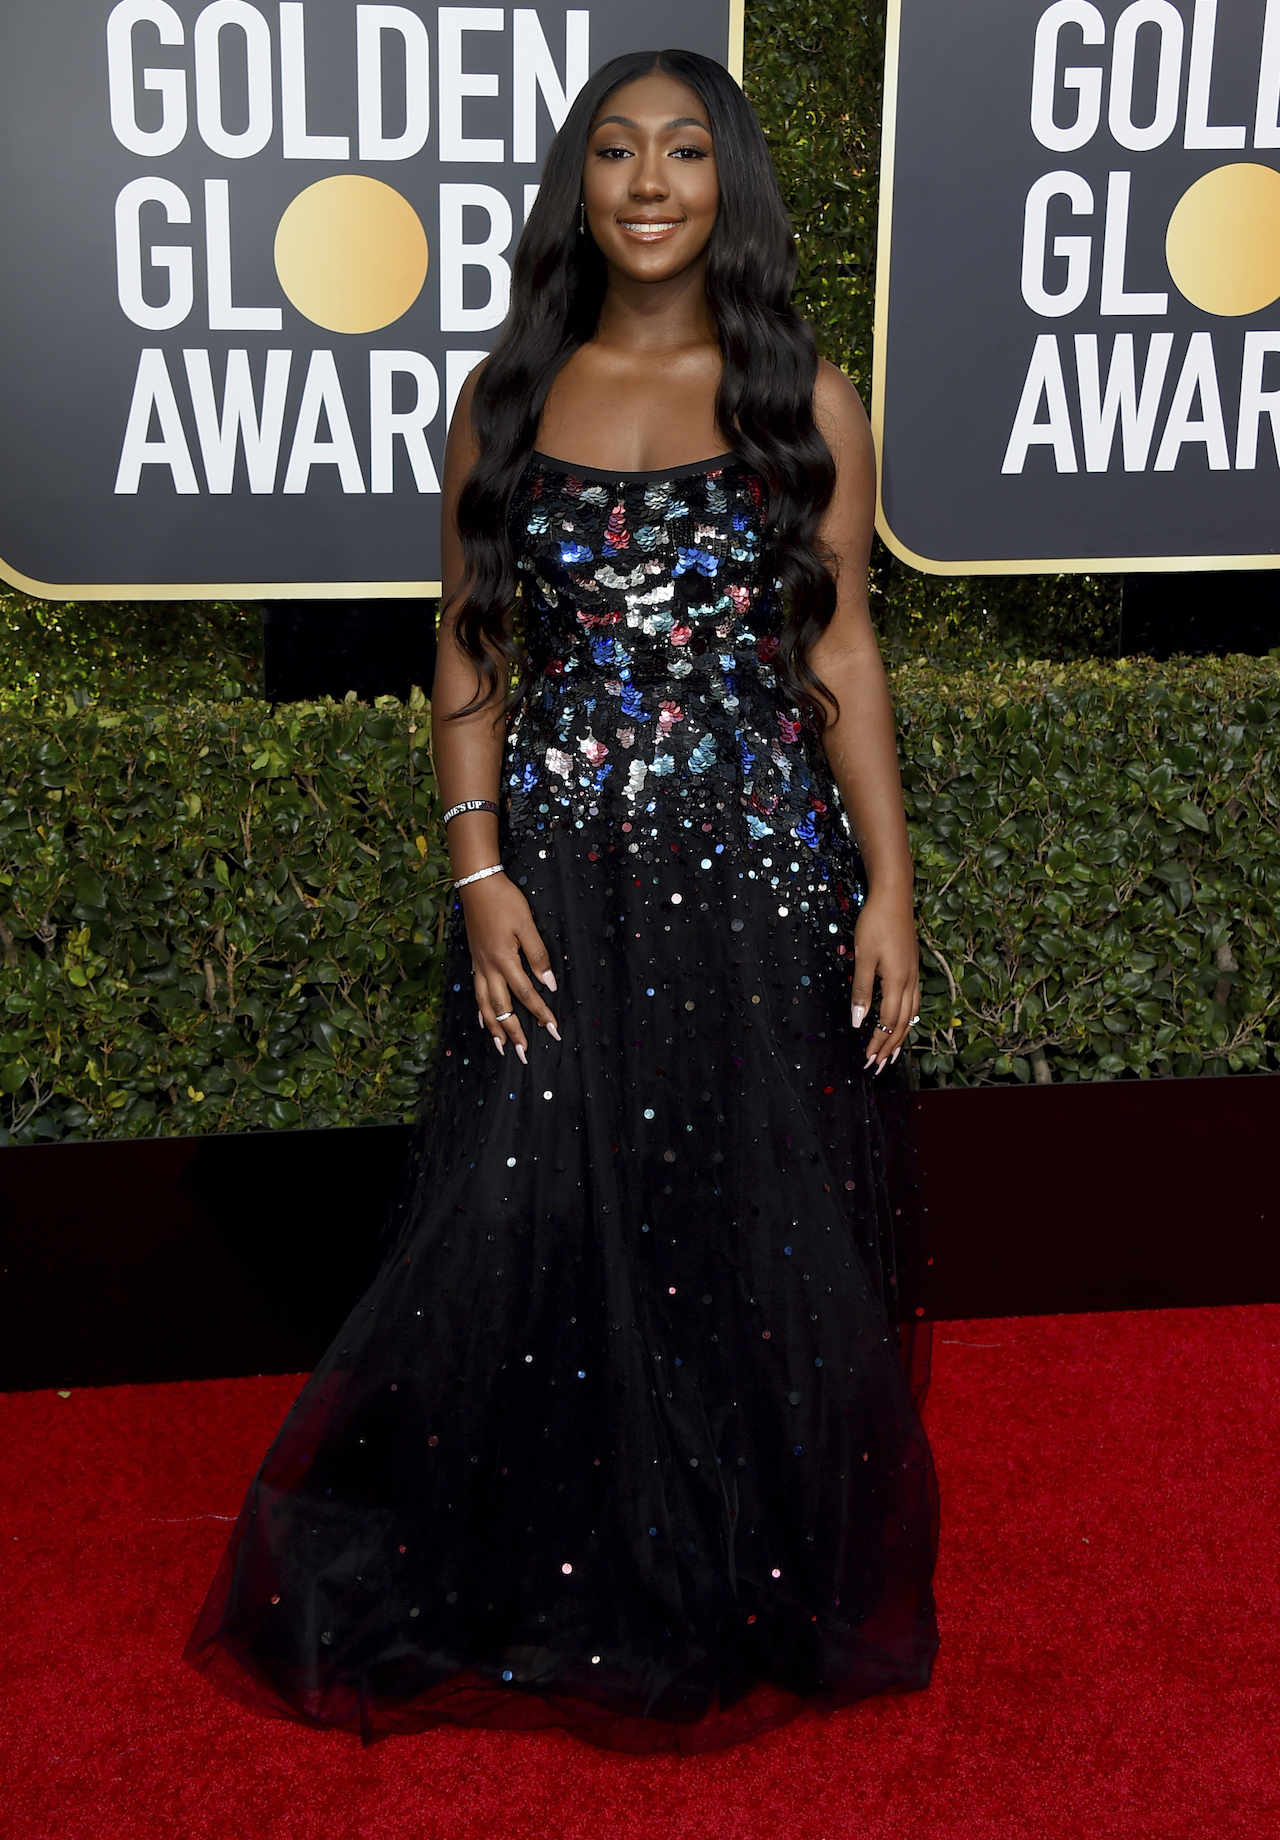 <div class='meta'><div class='origin-logo' data-origin='AP'></div><span class='caption-text' data-credit='Jordan Strauss/Invision/AP'>Isan Elba arrives at the 76th annual Golden Globe Awards at the Beverly Hilton Hotel on Sunday, Jan. 6, 2019, in Beverly Hills, Calif.</span></div>